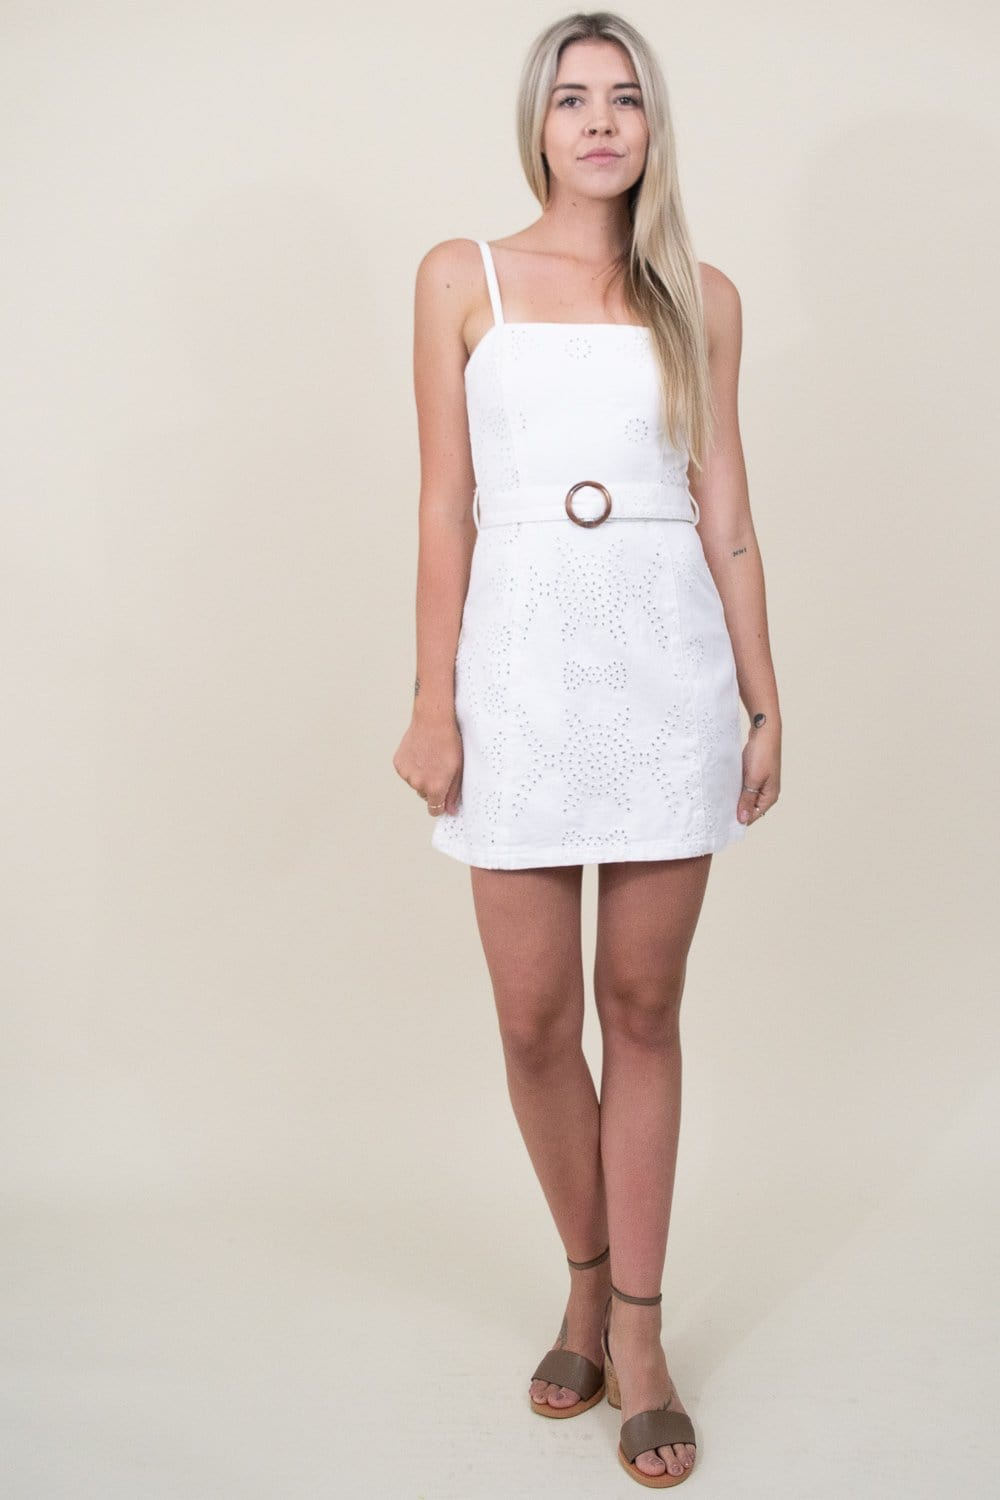 MINKPINK To the Coast Broidery Mini Dress in White | Wild Dove Boutique | San Diego, CA